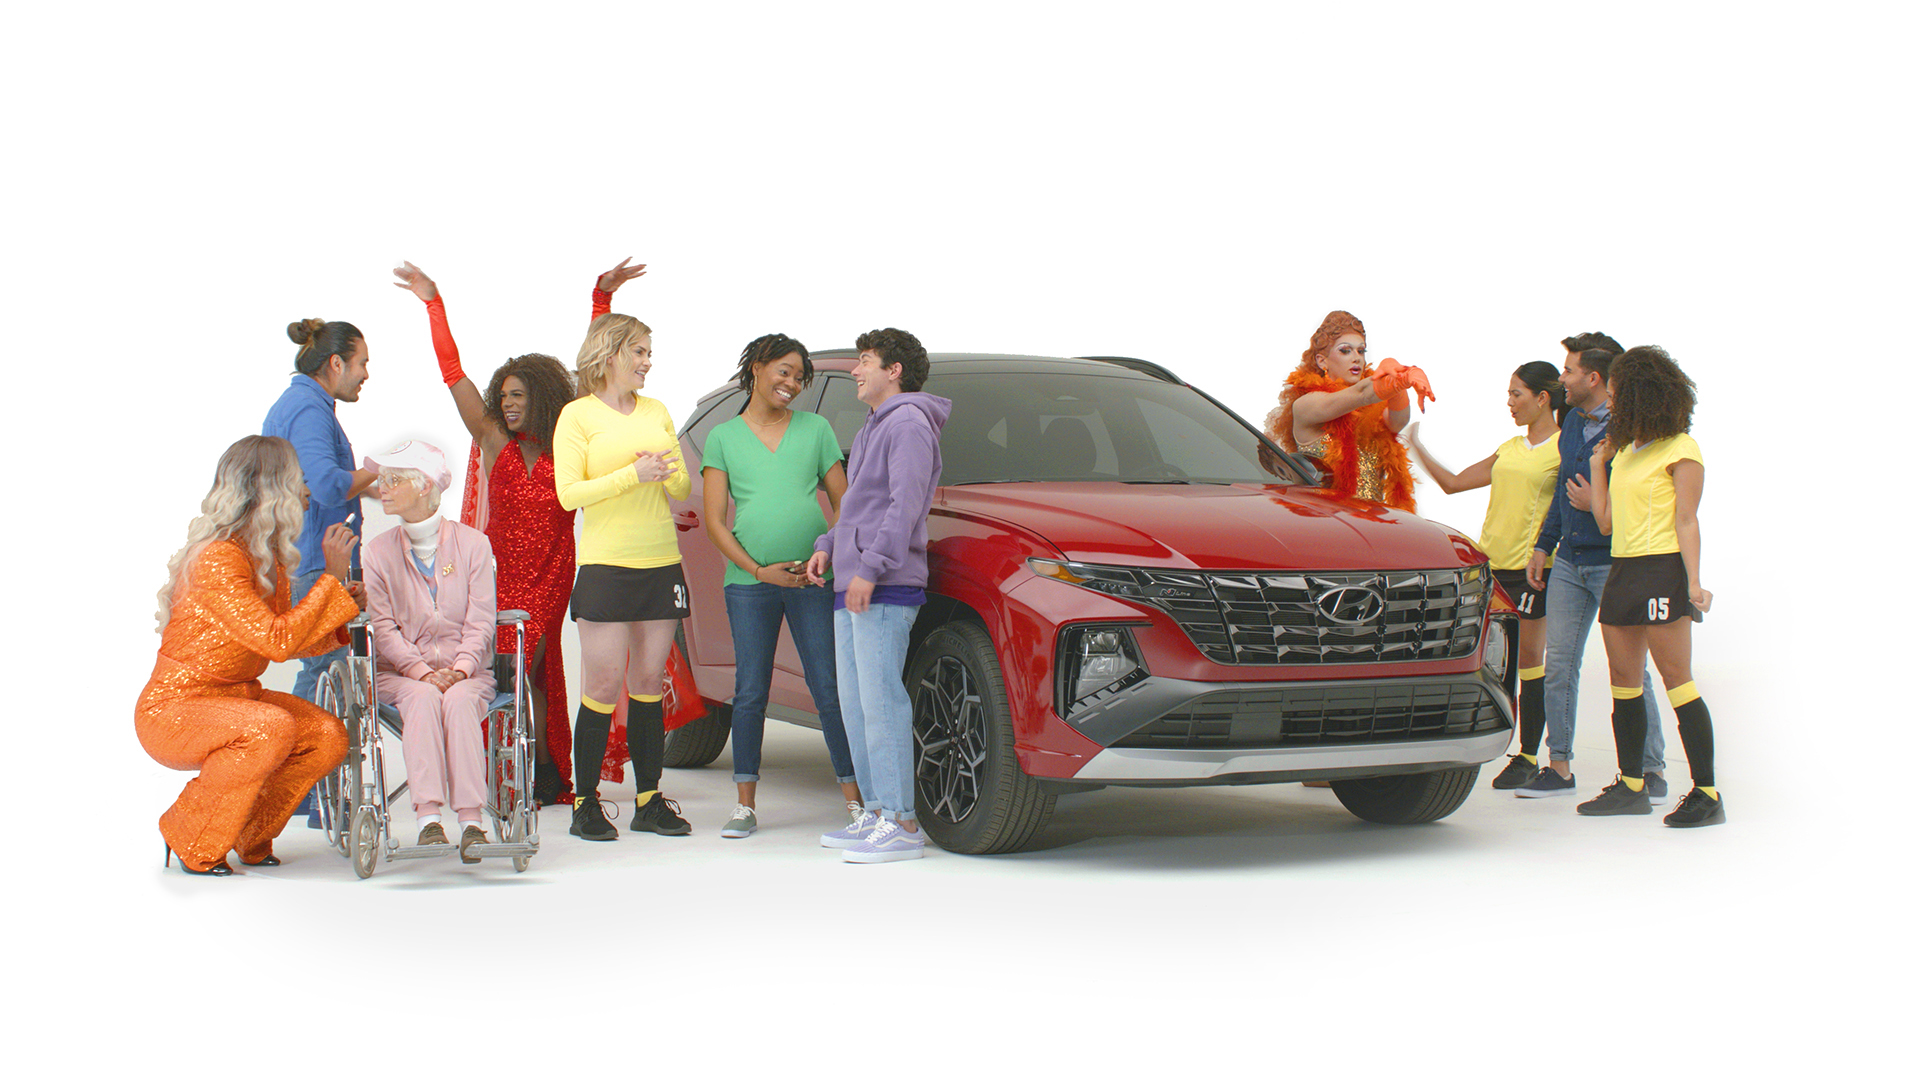 Hyundai Extends Support for the LGBTQ Community with Several Partnerships in 2021